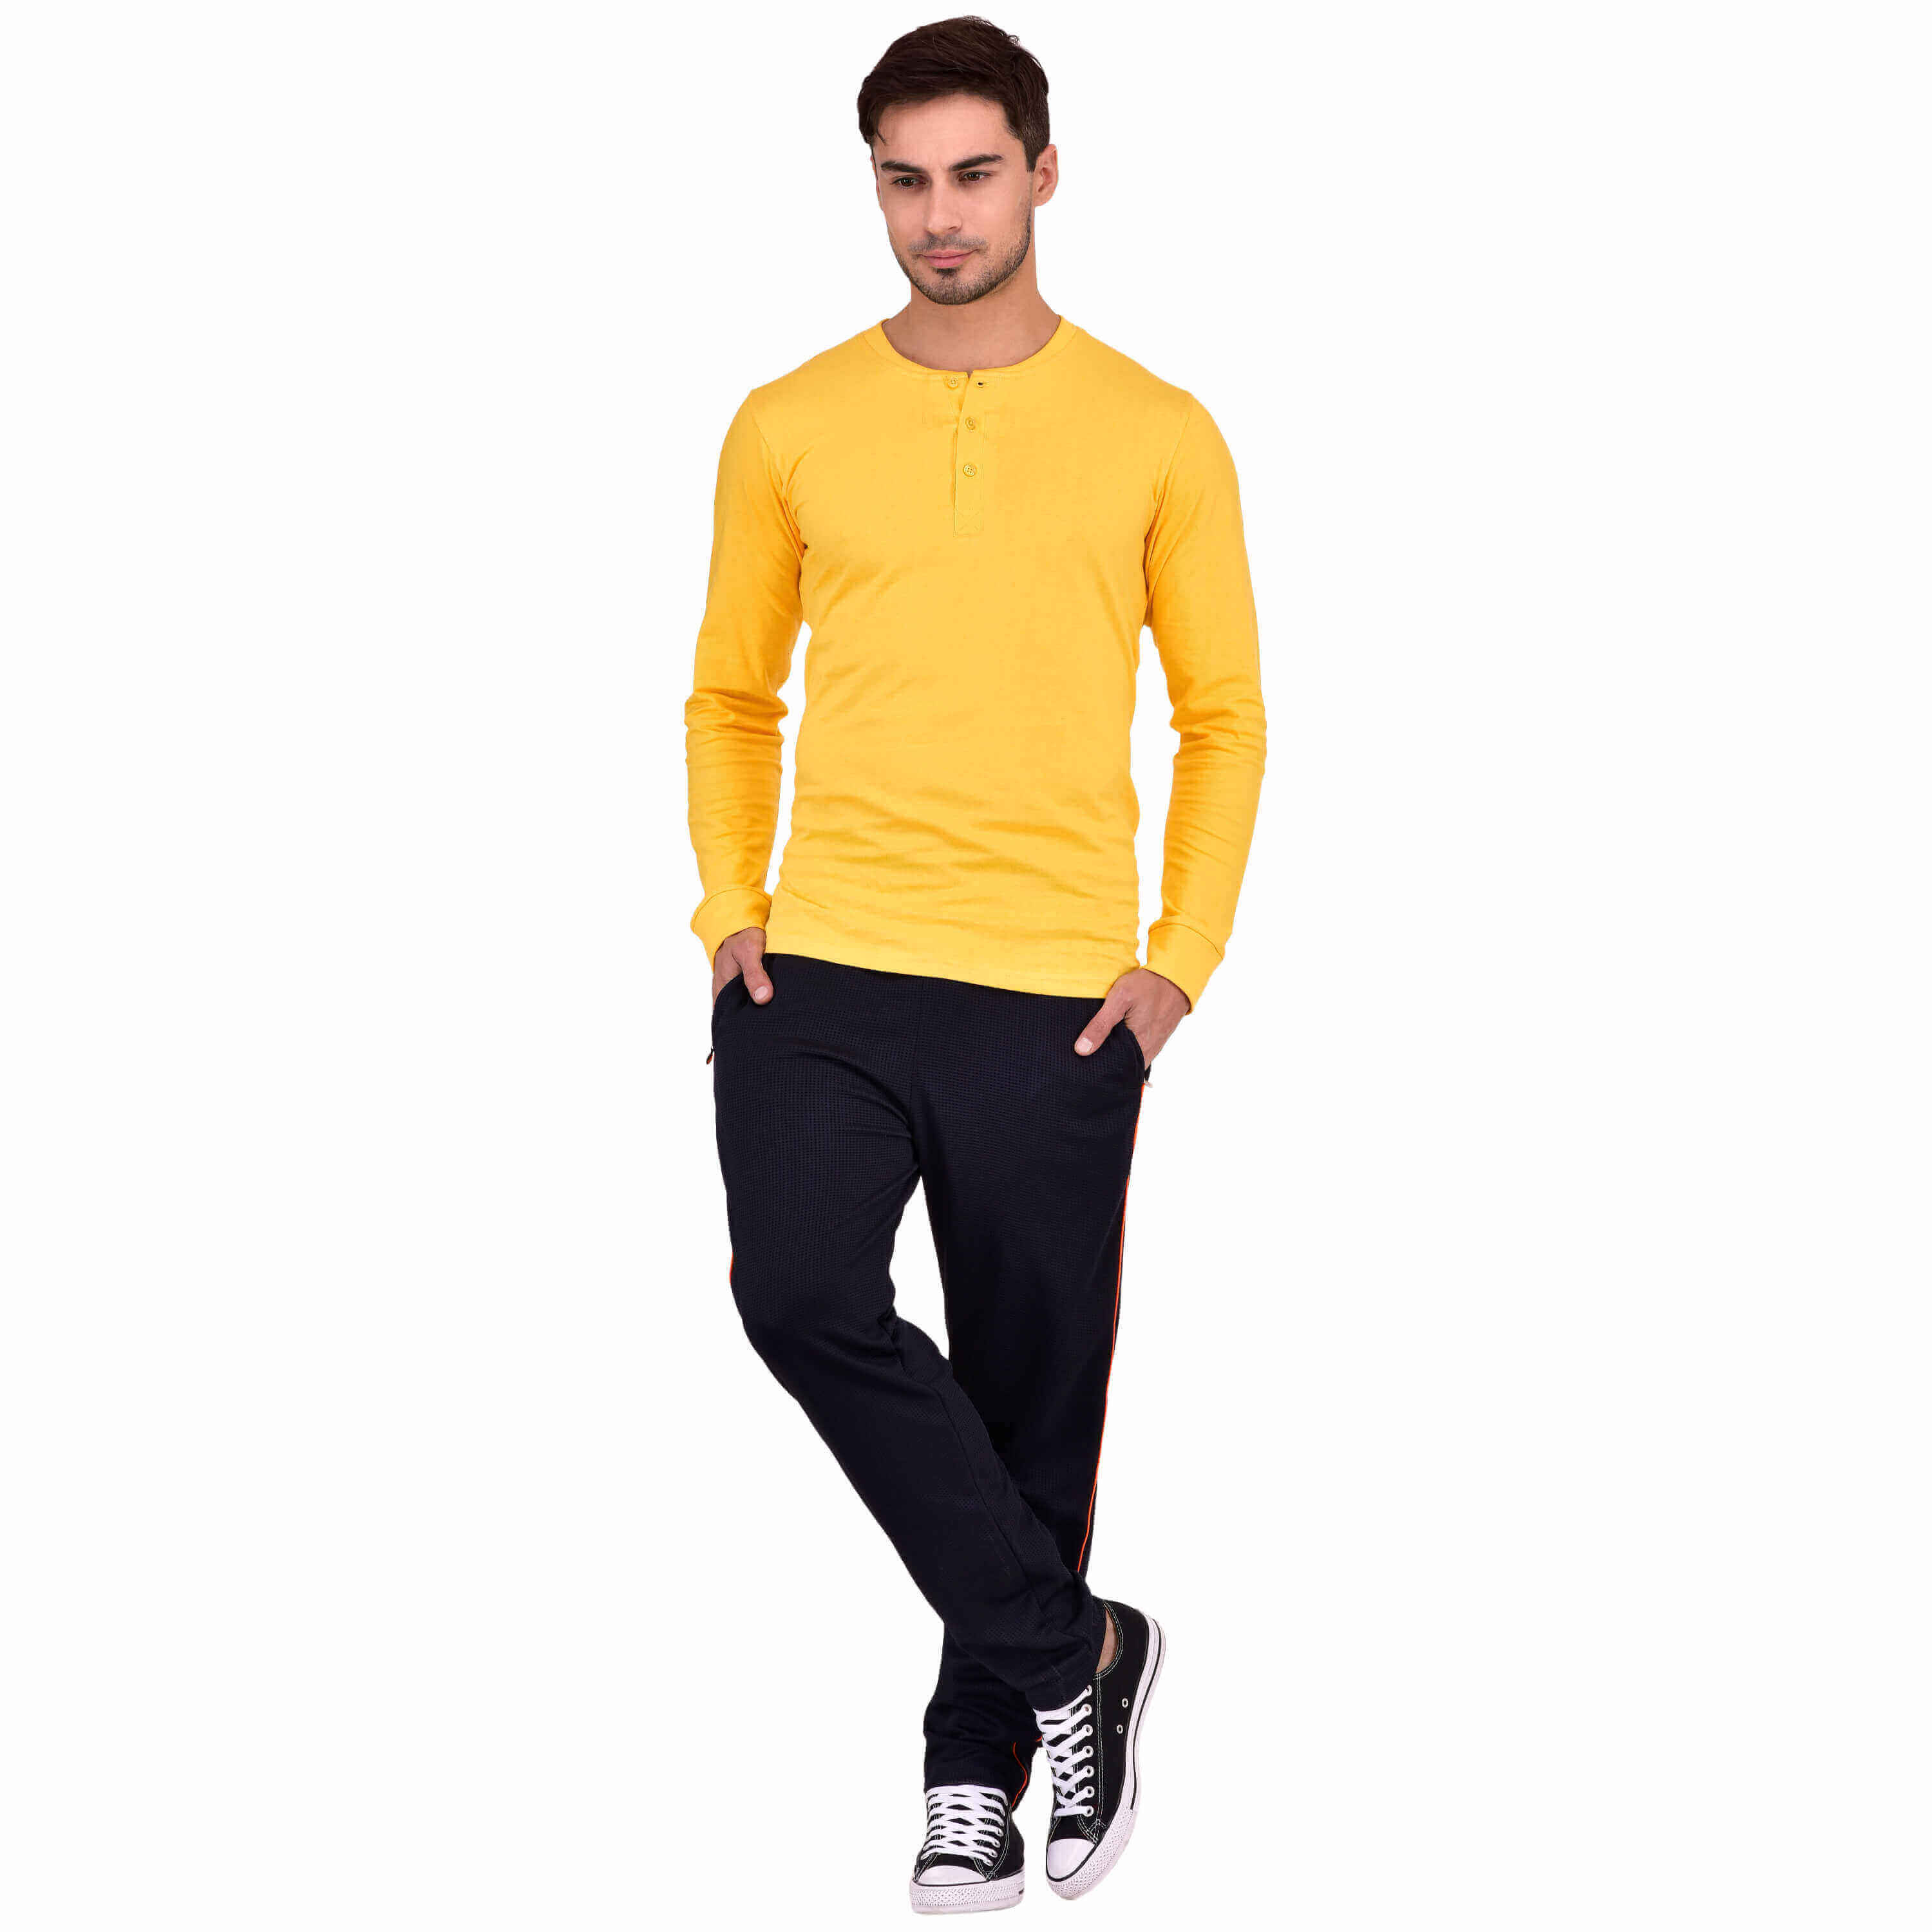 Long T Shirt Manufacturers in United-states-of-america